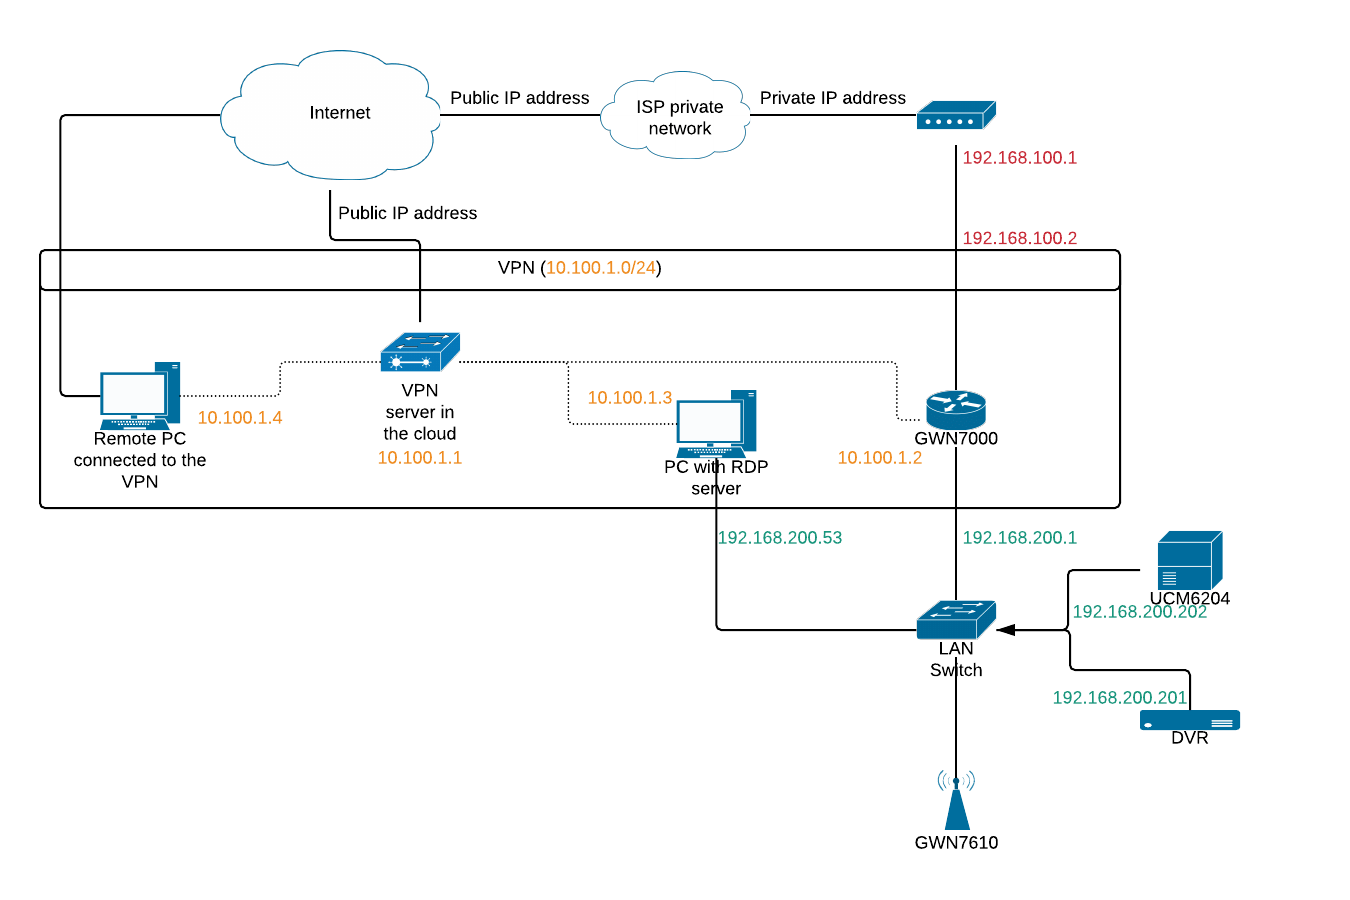 hight resolution of gs network png1350x900 56 9 kb